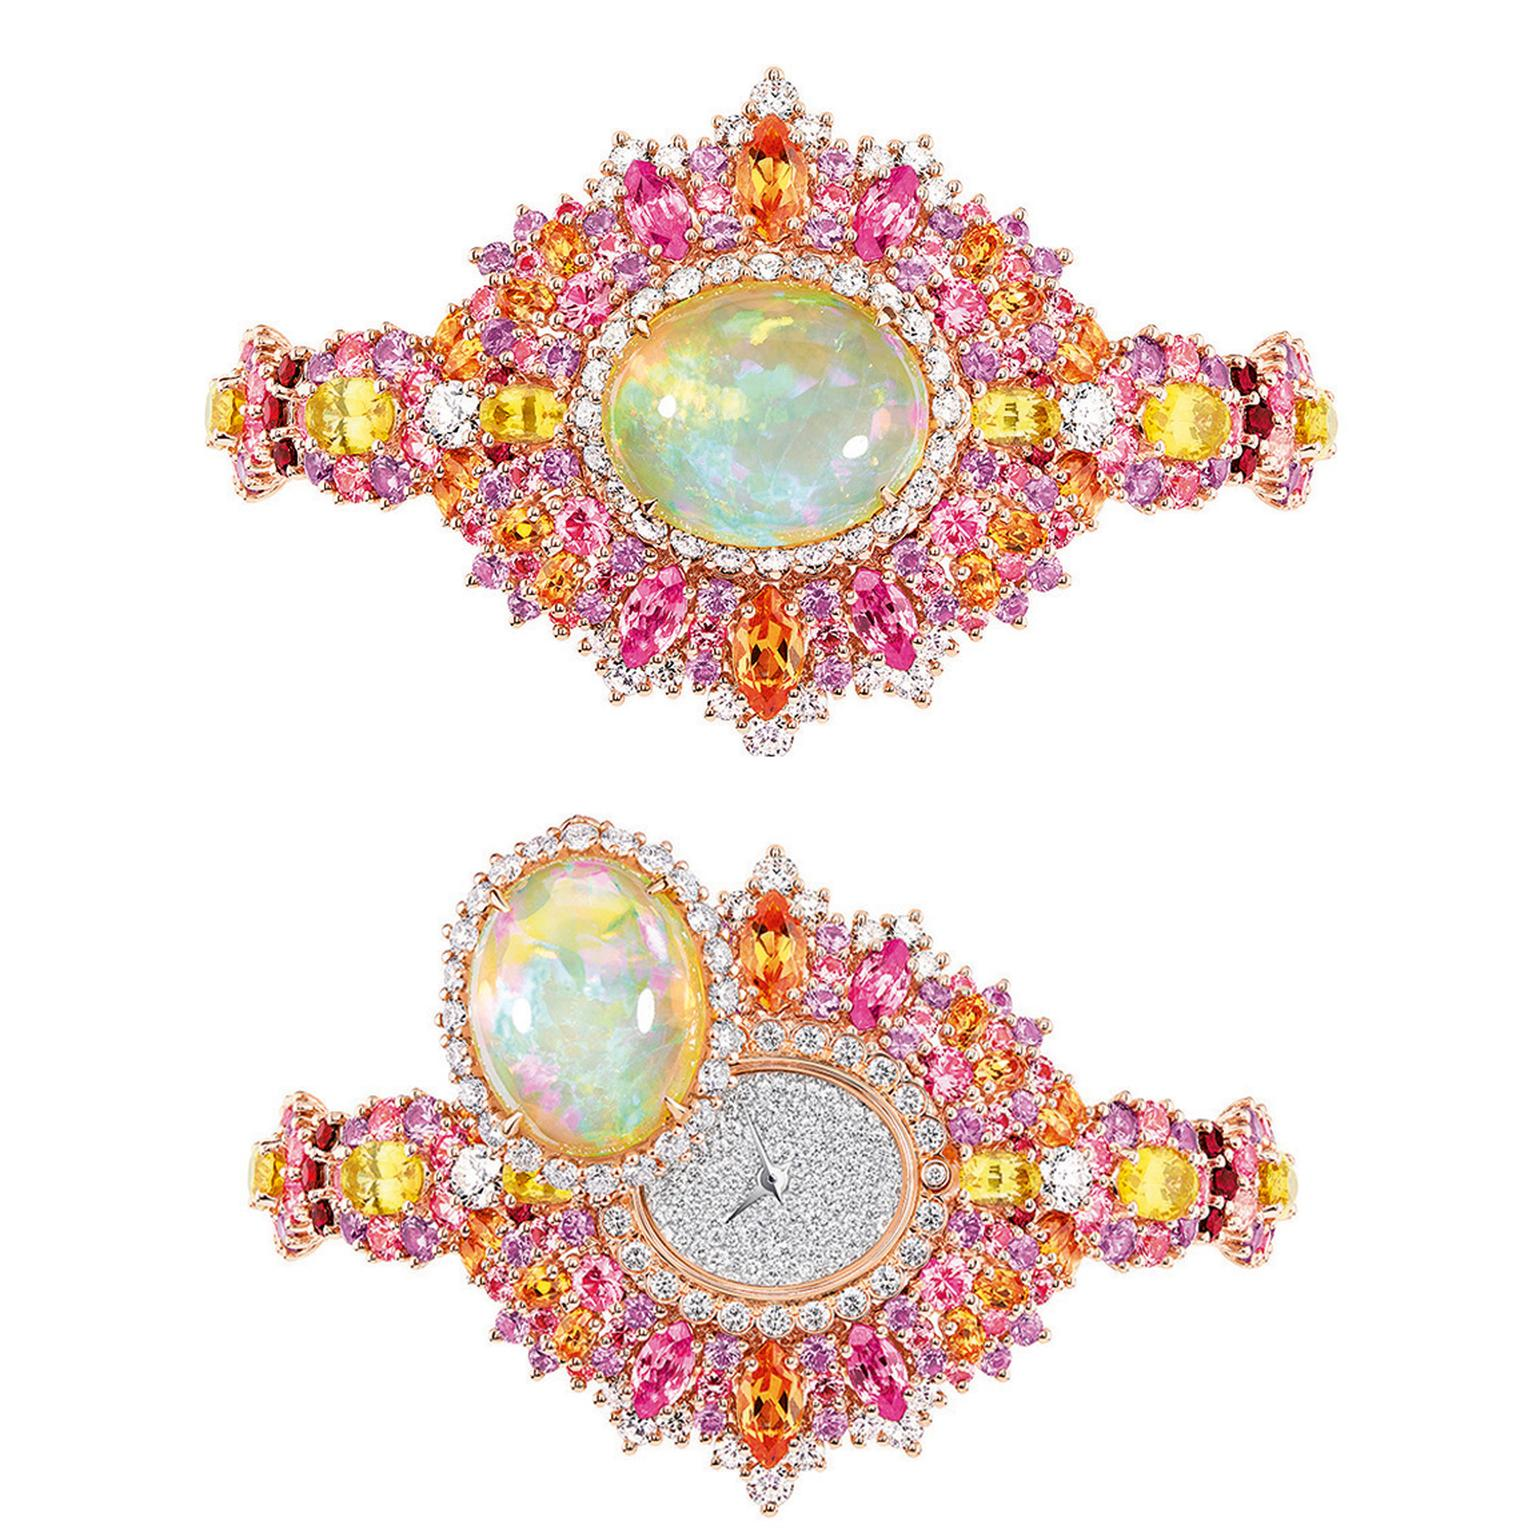 Dior Exquise Opal High Jewellery Timepiece